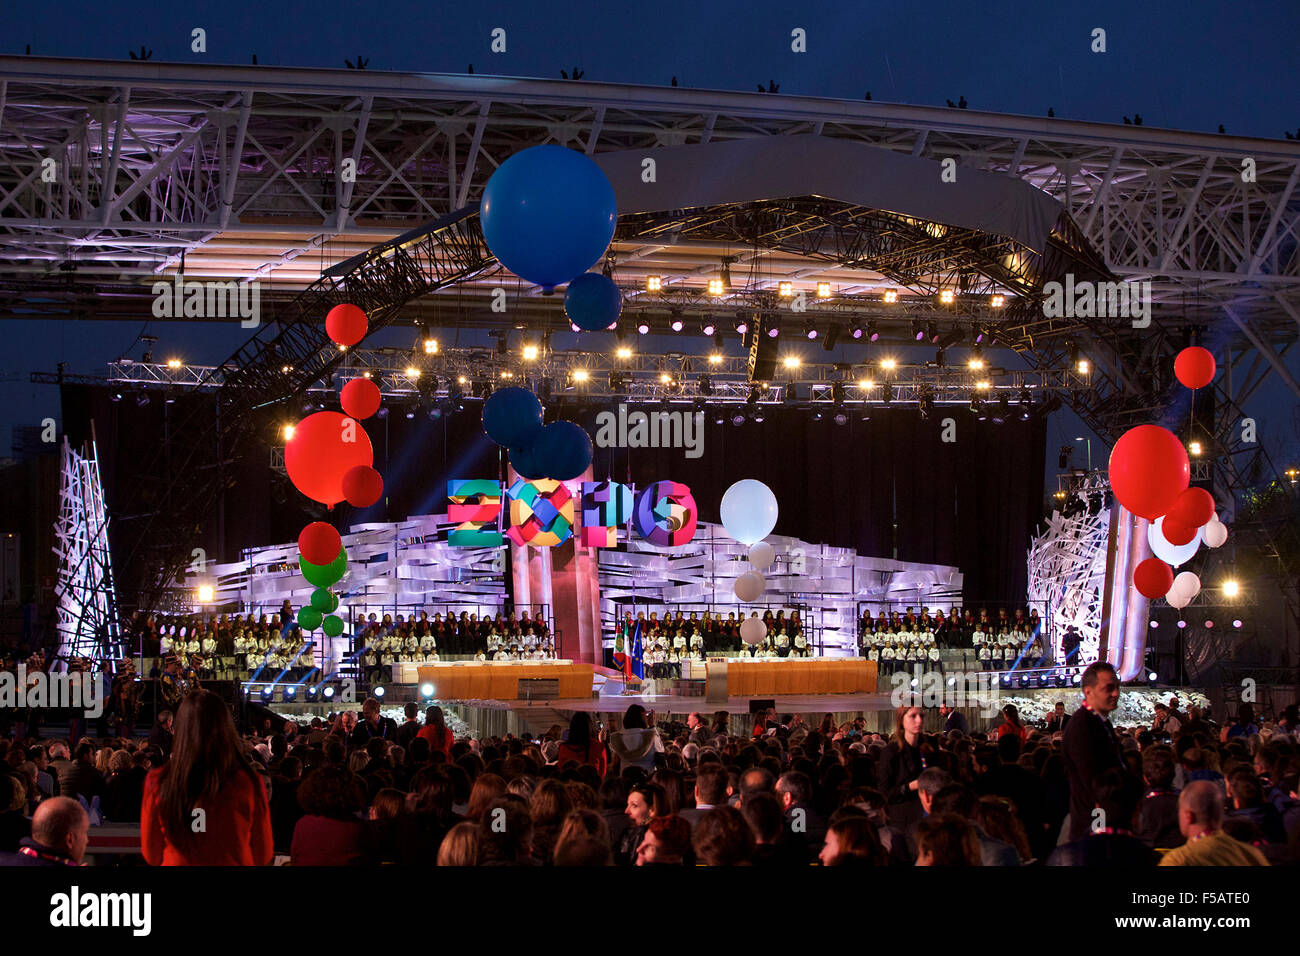 Milan. 31st Oct, 2015. Photo taken on Oct. 31, 2015 shows the closing ceremony of Expo Milano 2015 in Milan, Italy. - Stock Image